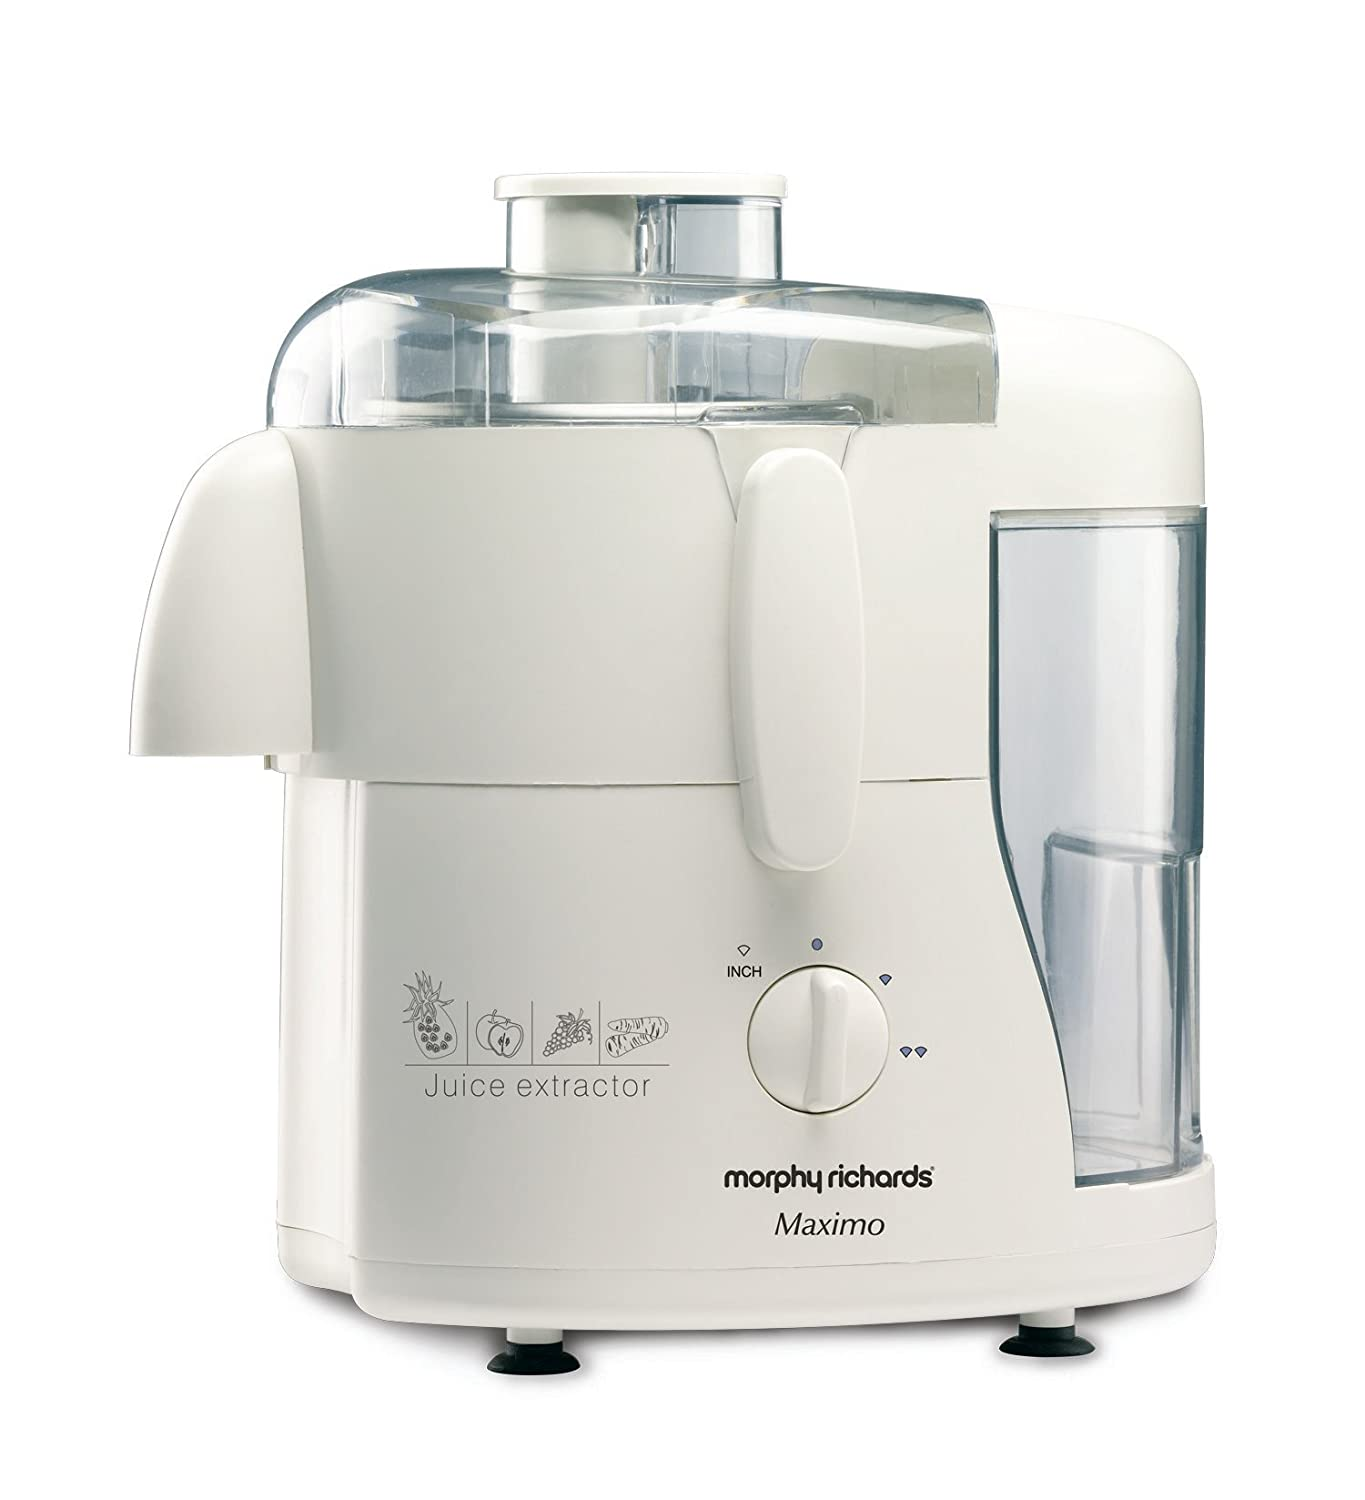 Morphy Richards Maximo 450-Watt Juice Extractor